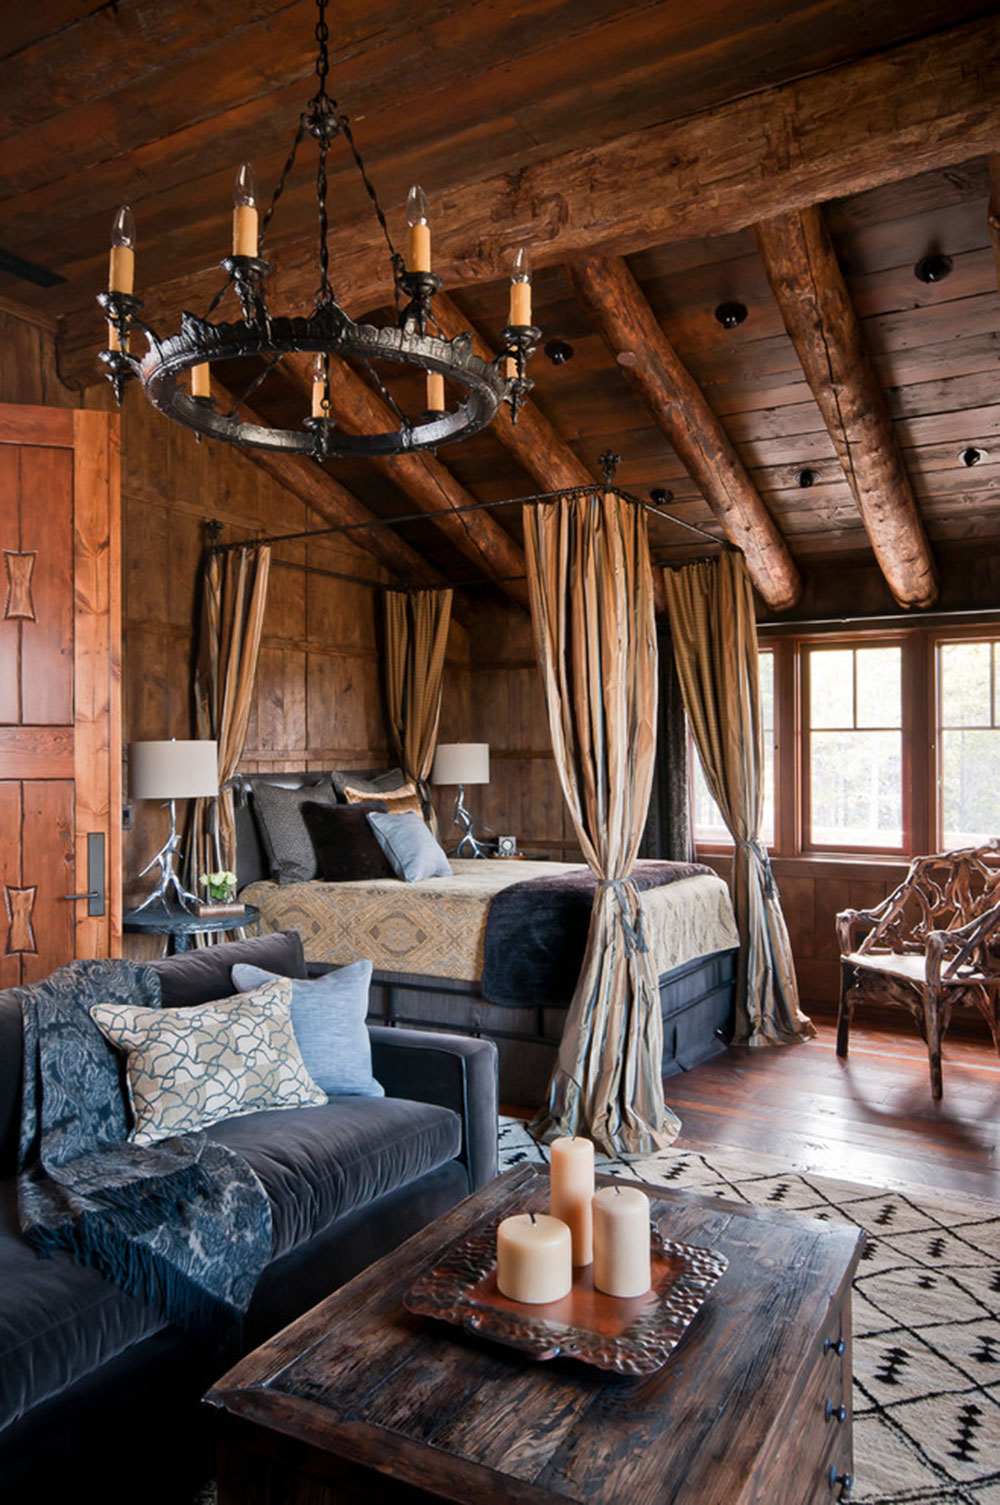 Brown and blue rustic bedroom - Rustic Bedroom Design Ideas Which Radiate Comfort 13 Rustic Bedroom Design Ideas Which Radiate Comfort